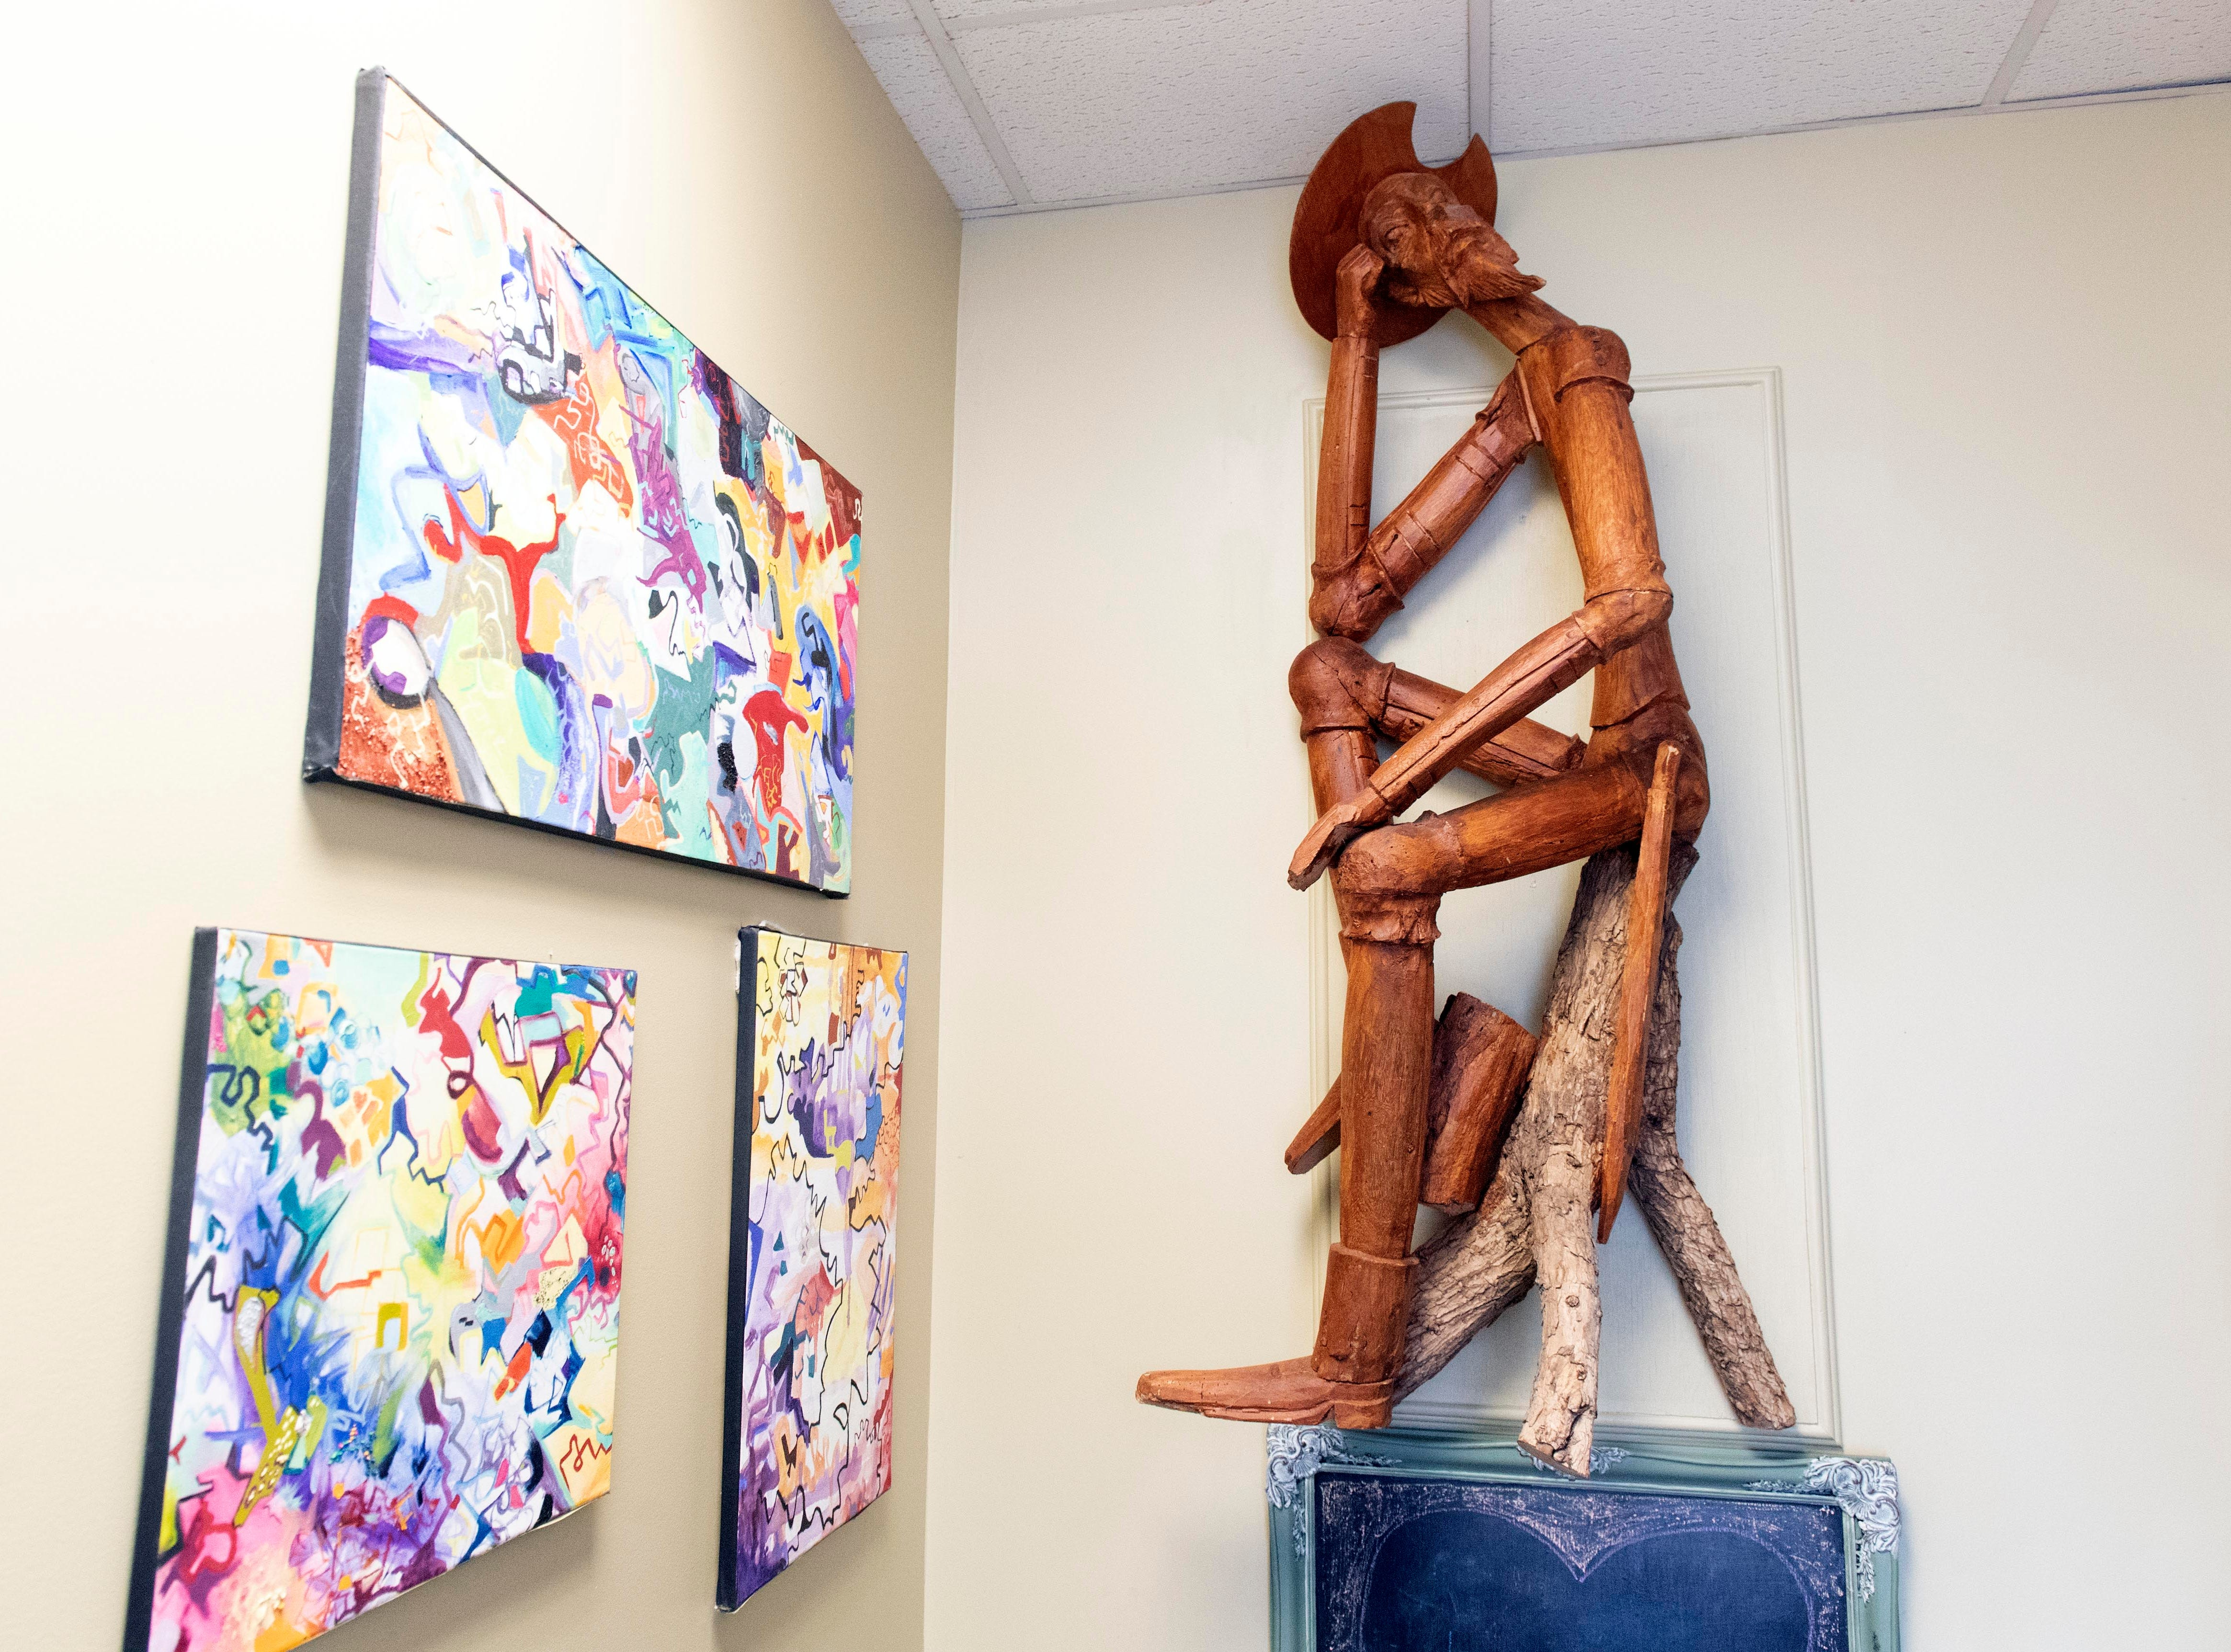 While HomeGrown features artwork from local artists, this wooden sculpture was left over from the Front Porch Cafe, which closed in March of 2018. HomeGrown is set to open on Jan. 10, with an American-style menu with a French twist. It's also BYOB.